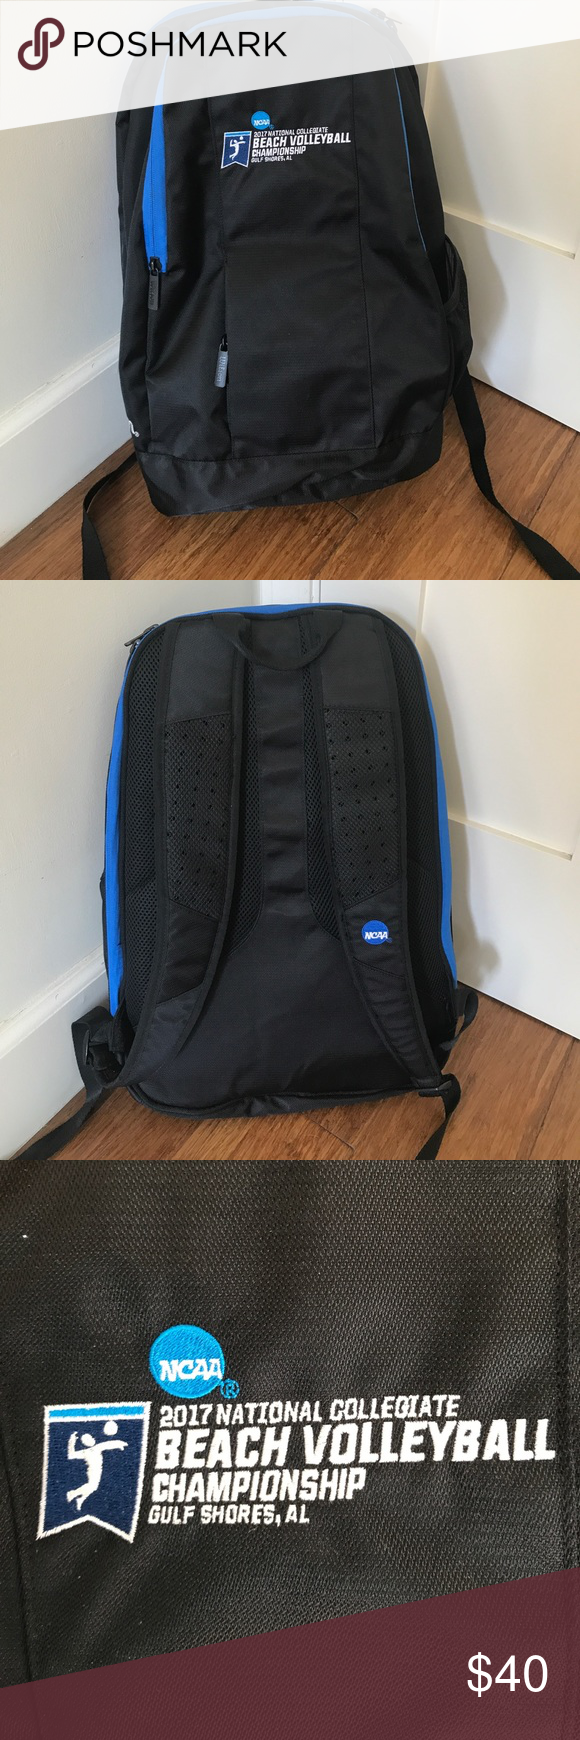 Ncaa Beach Volleyball Championship Backpack Euc Beach Volleyball Backpacks Volleyball